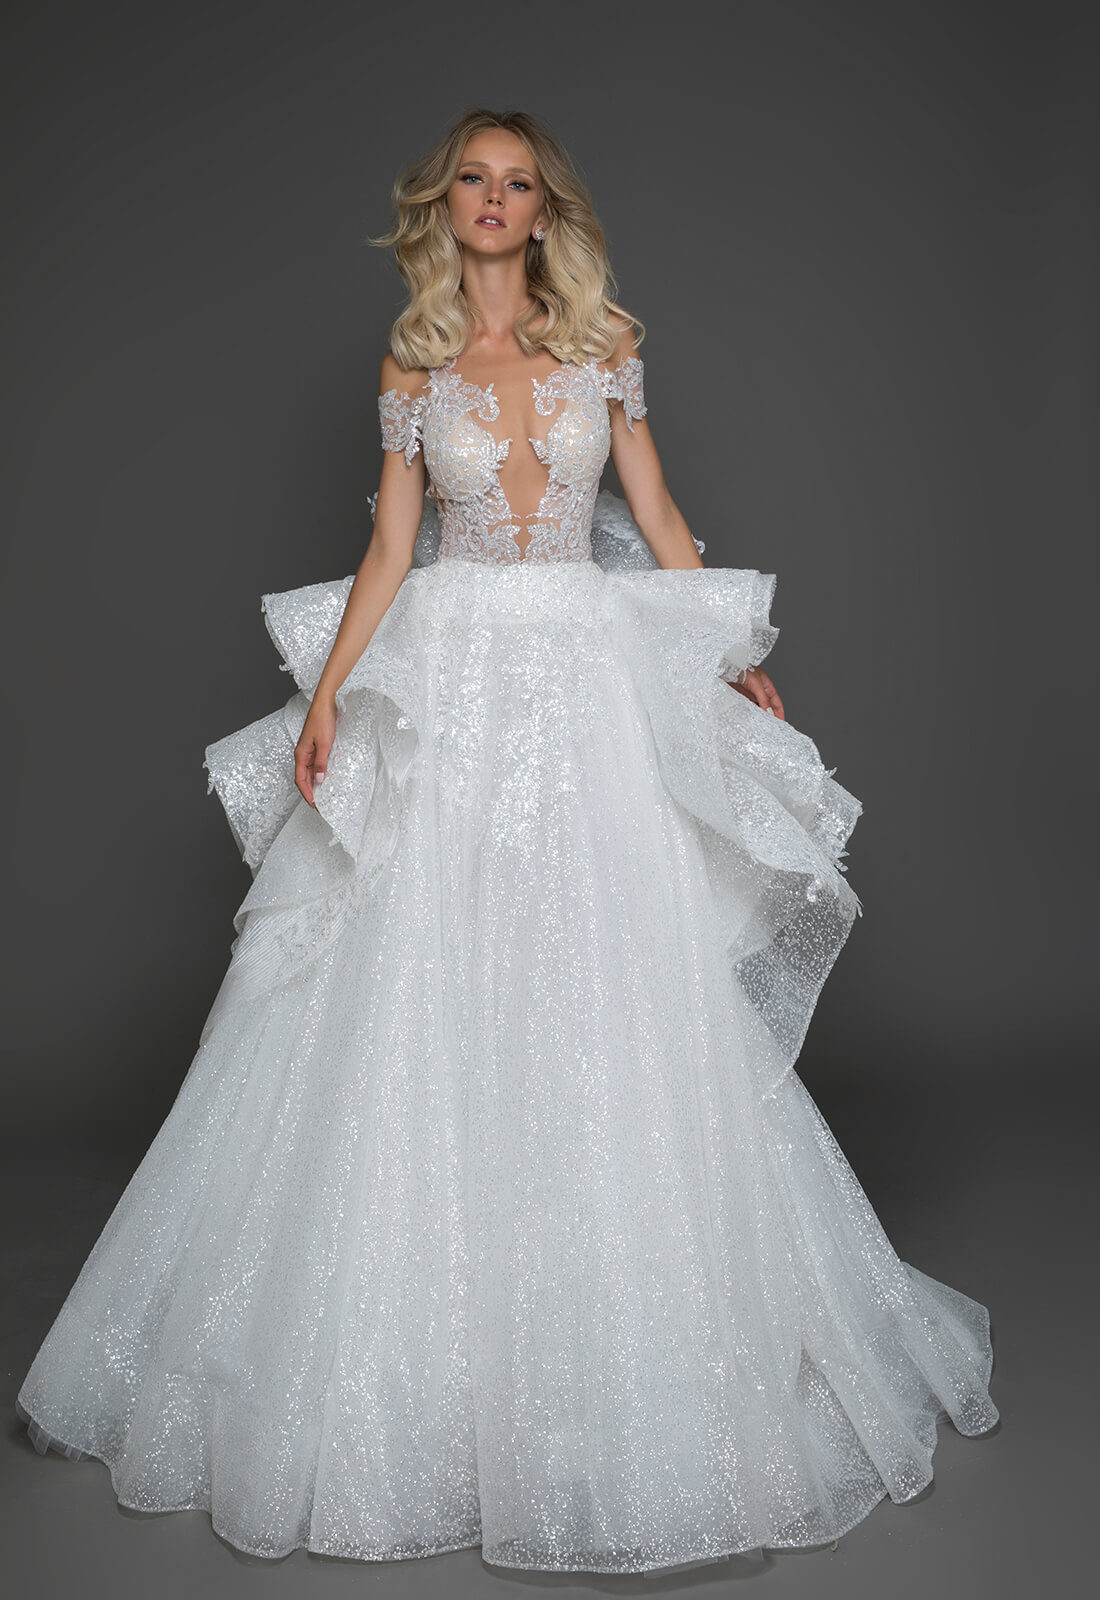 Sexy ball gown wedding dress kleinfeld bridal sexy ball gown wedding dress by pnina tornai image 1 zoomed in junglespirit Choice Image